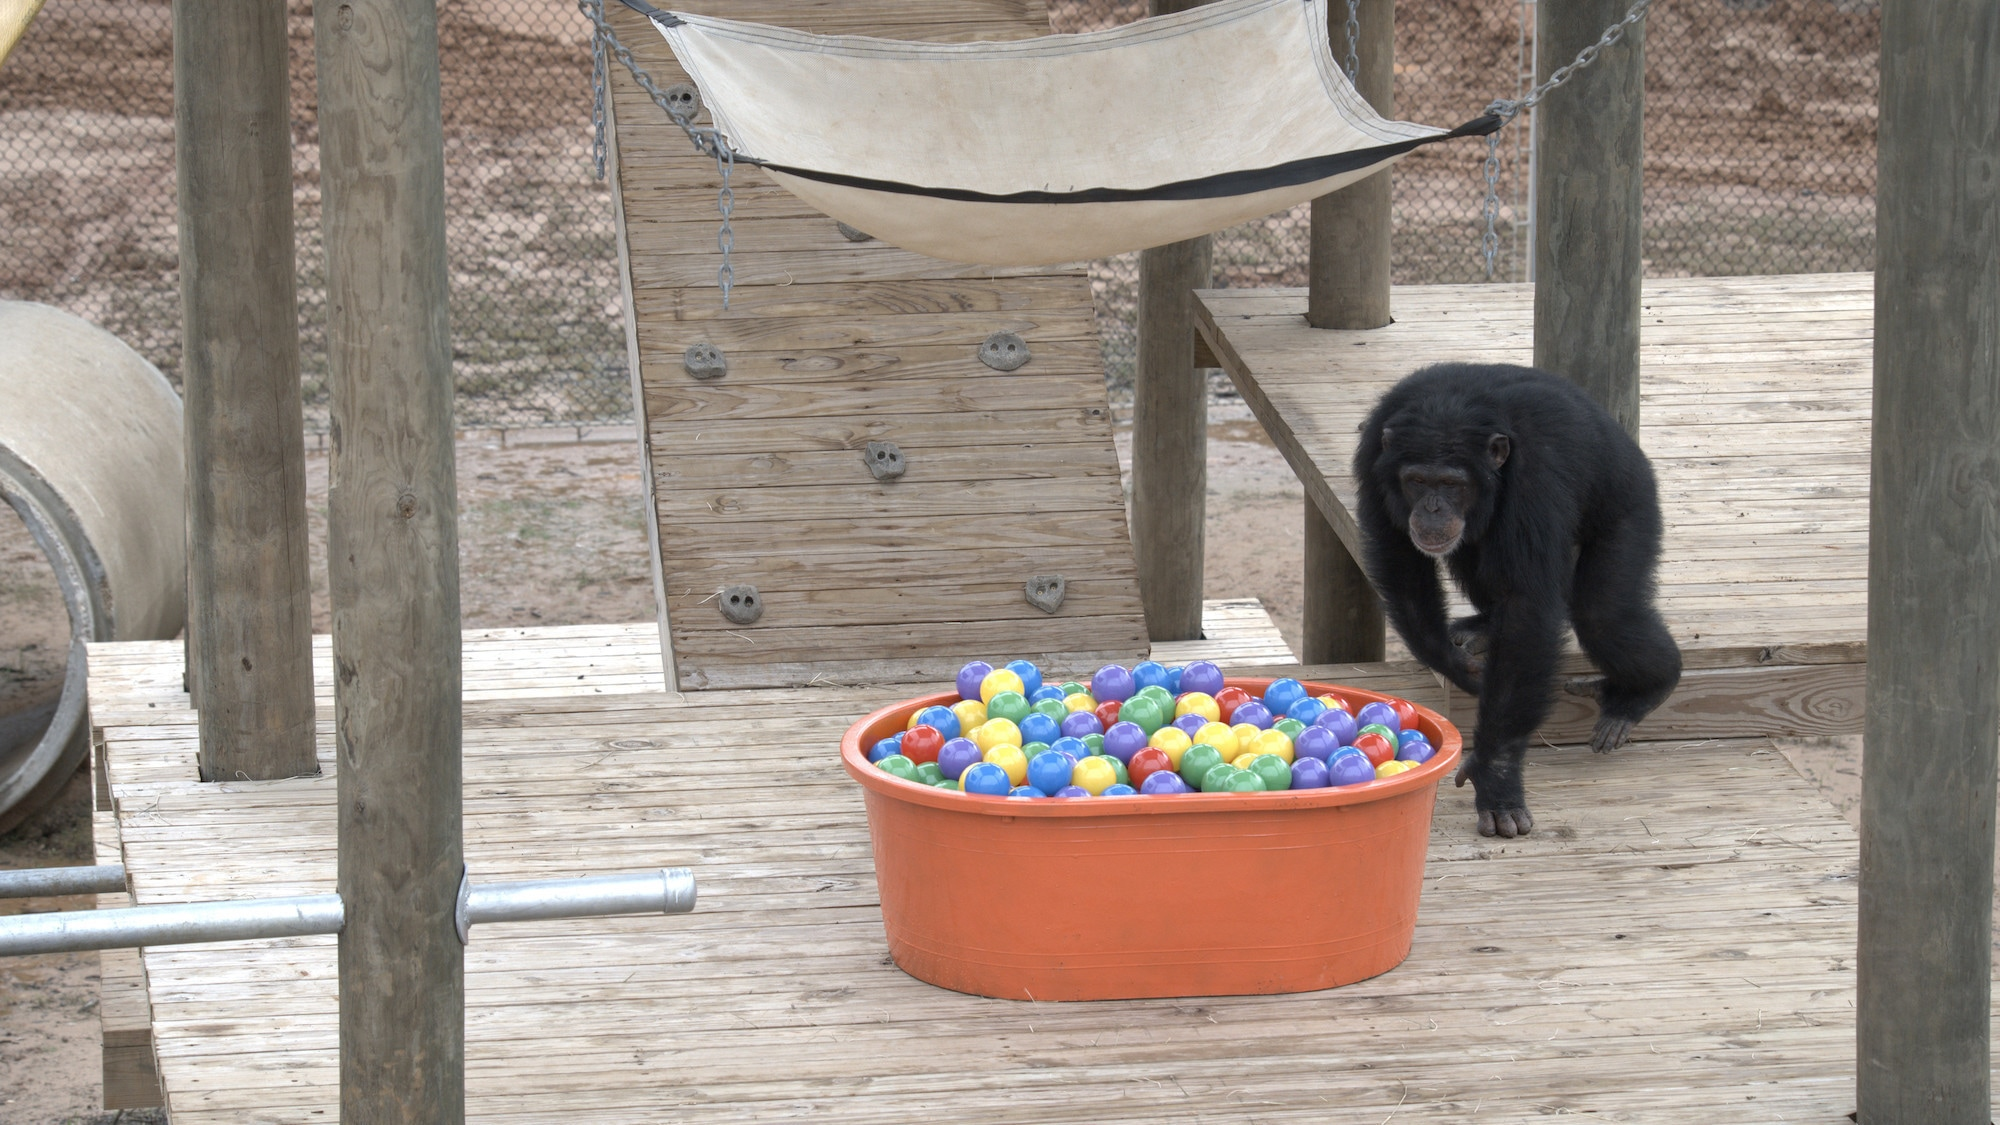 Riley walking up to investigate ball pit for the first time. Slim's group. (National Geographic/Virginia Quinn)